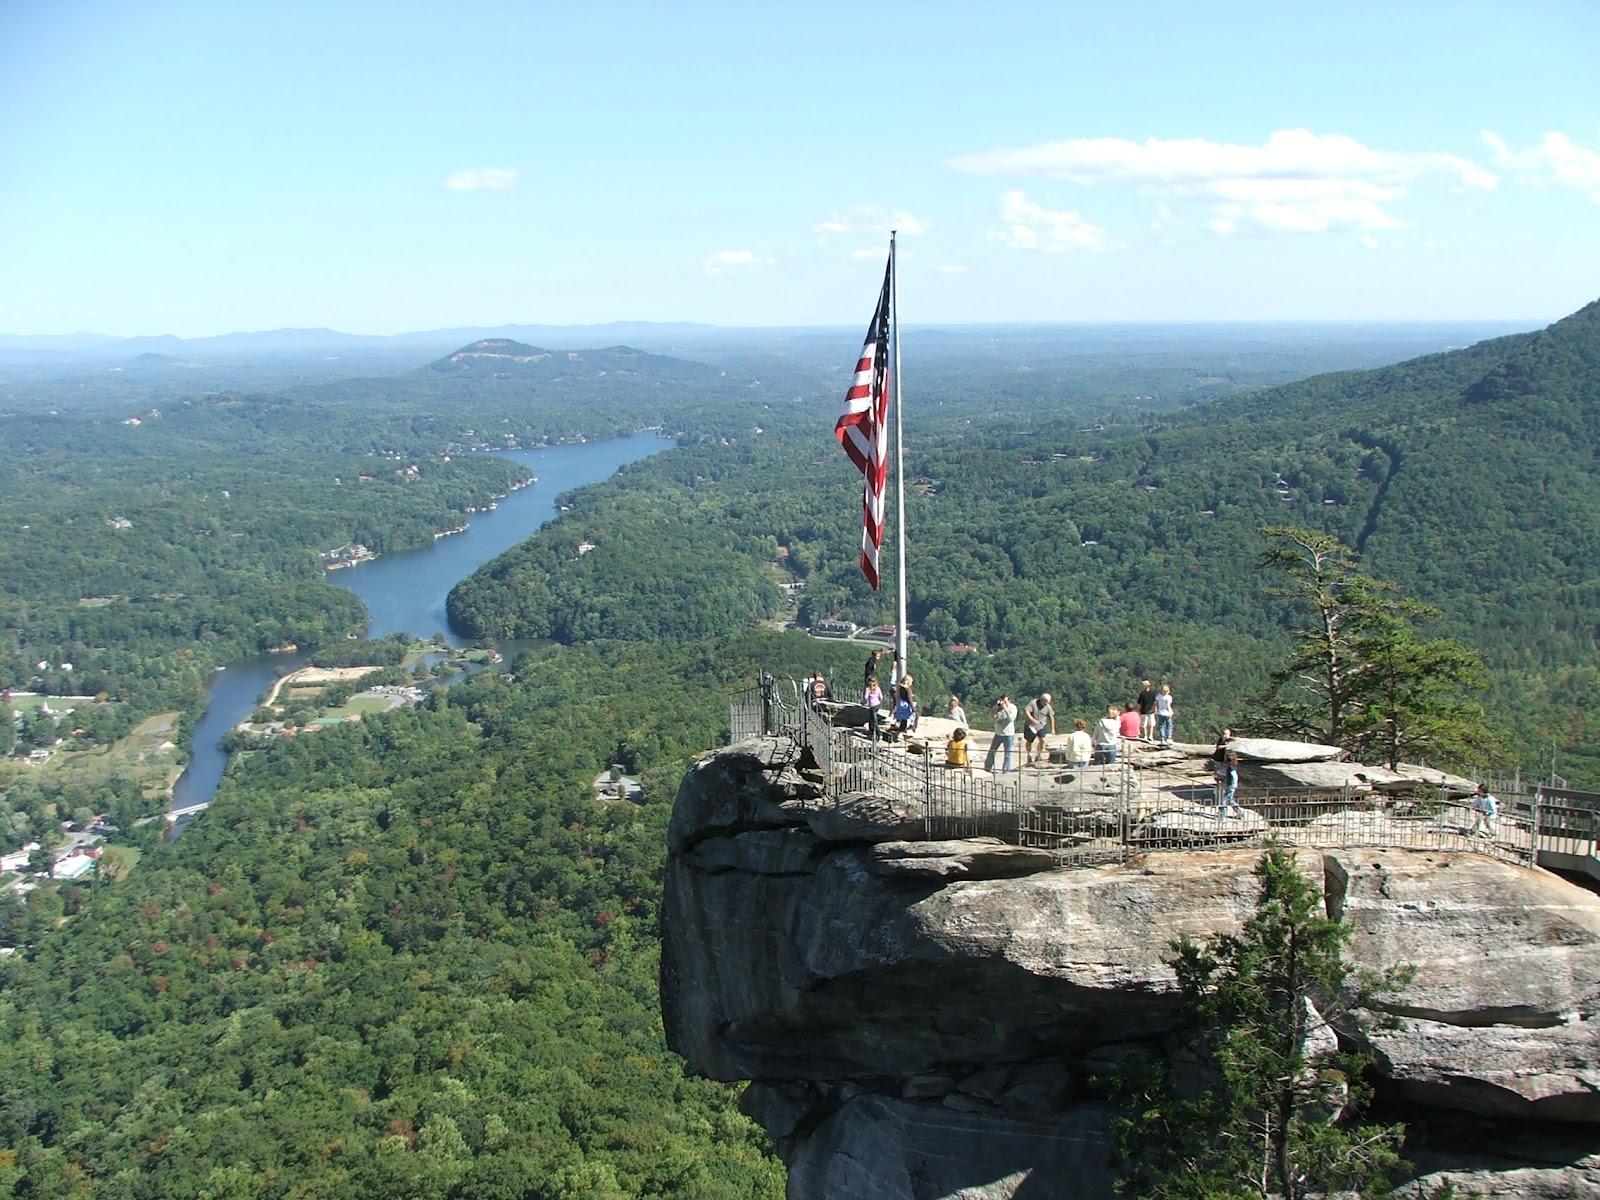 photos com vacation booking chimney cabin hotel rock cabins view close home nc us